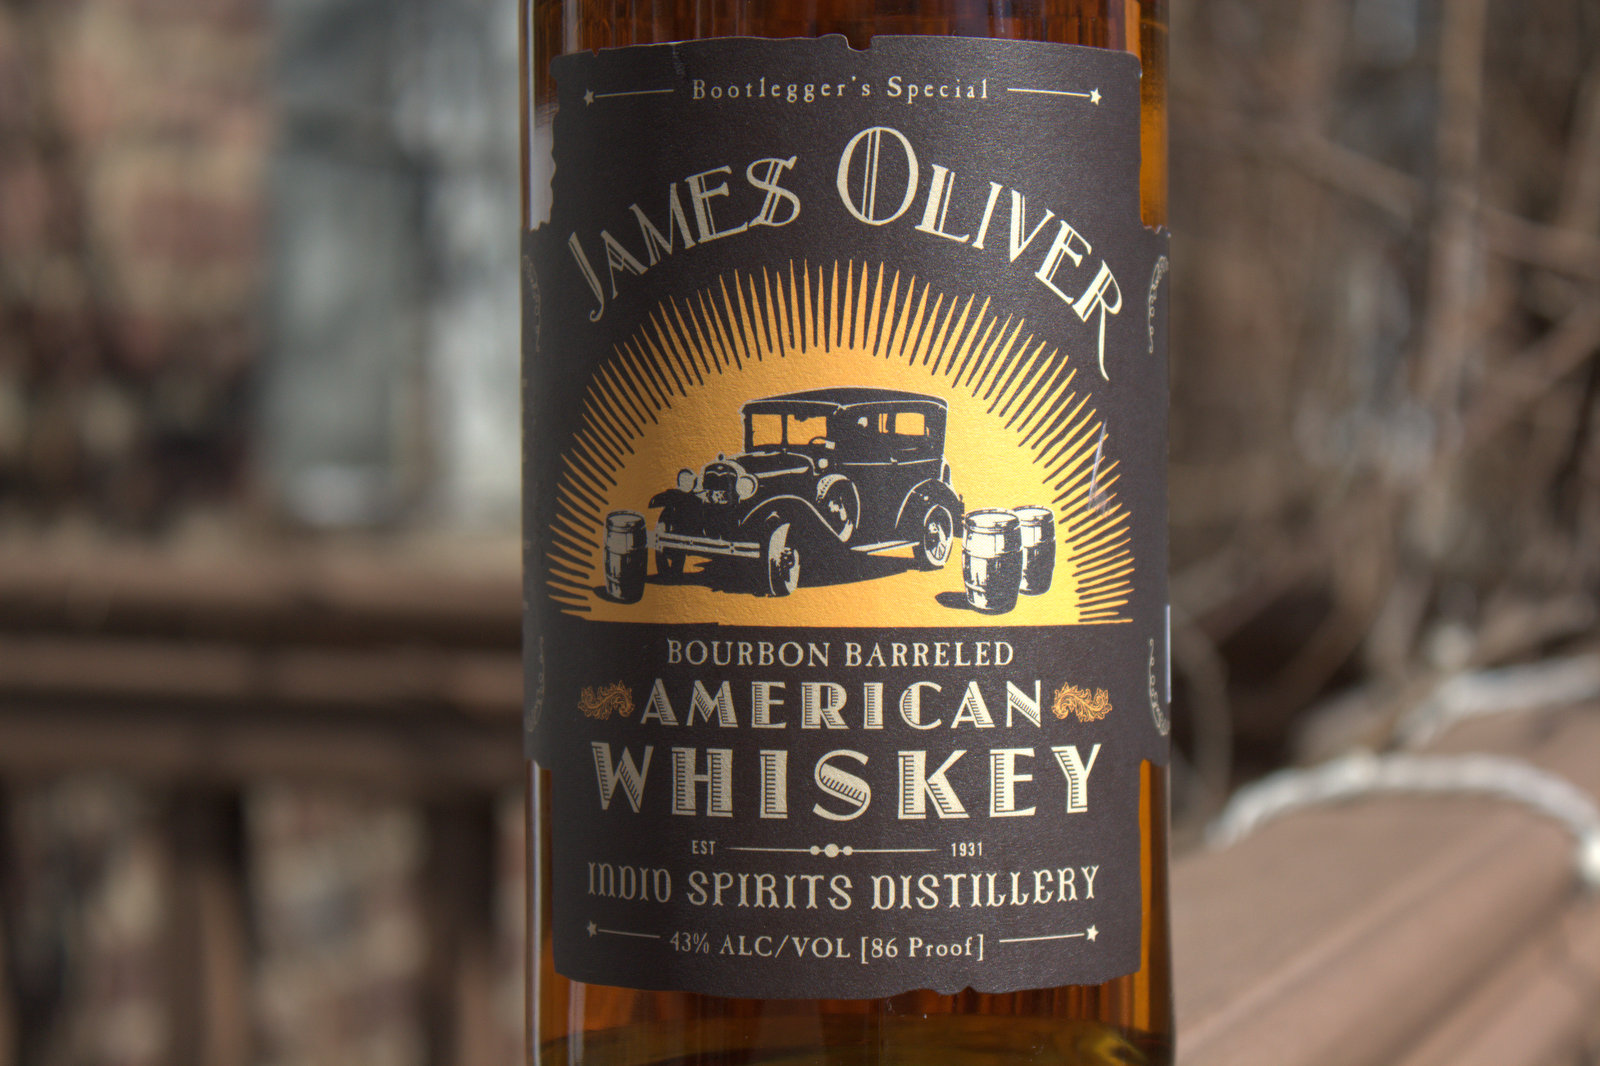 James Oliver American Whiskey Review - Fine Tobacco NYC